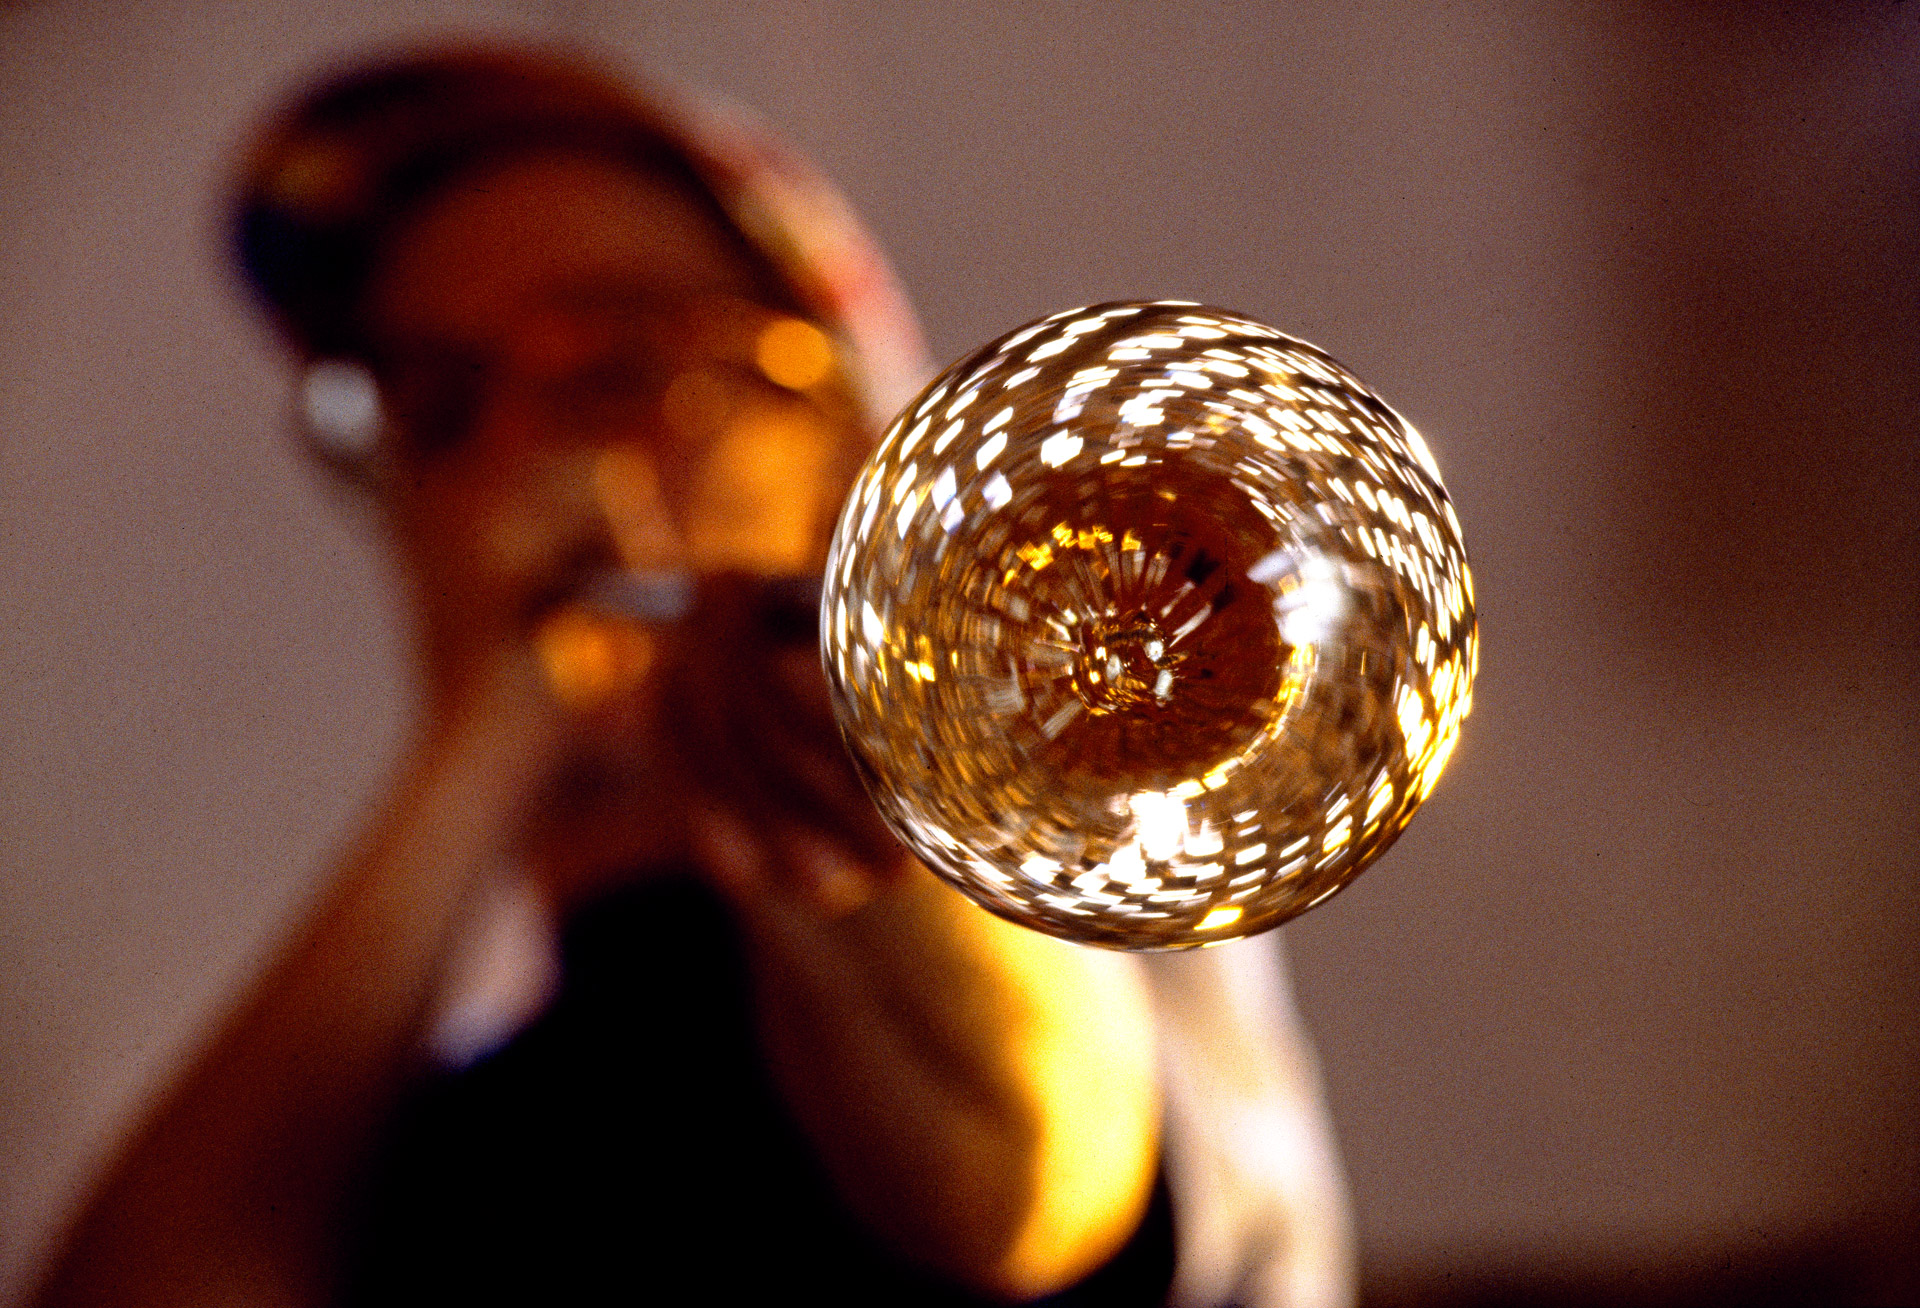 A glass blower at Baltic Glass in Bornholm